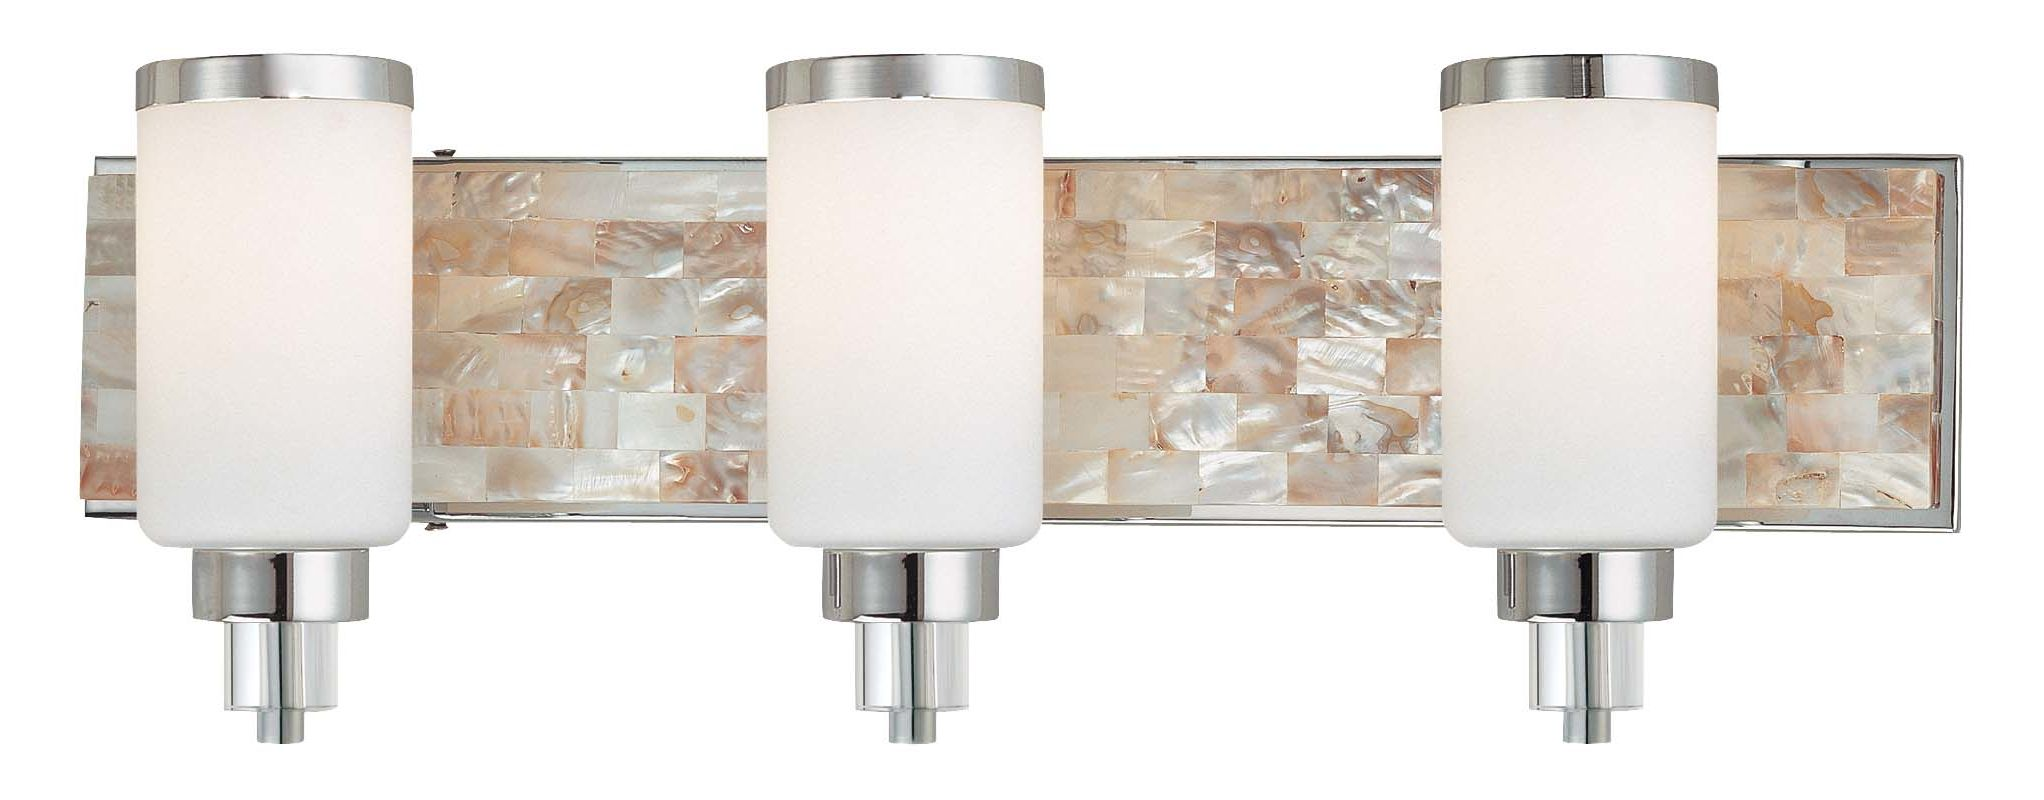 Minka Lavery 3243 3 Light 25.5&quote Width Bathroom Vanity Light Chrome